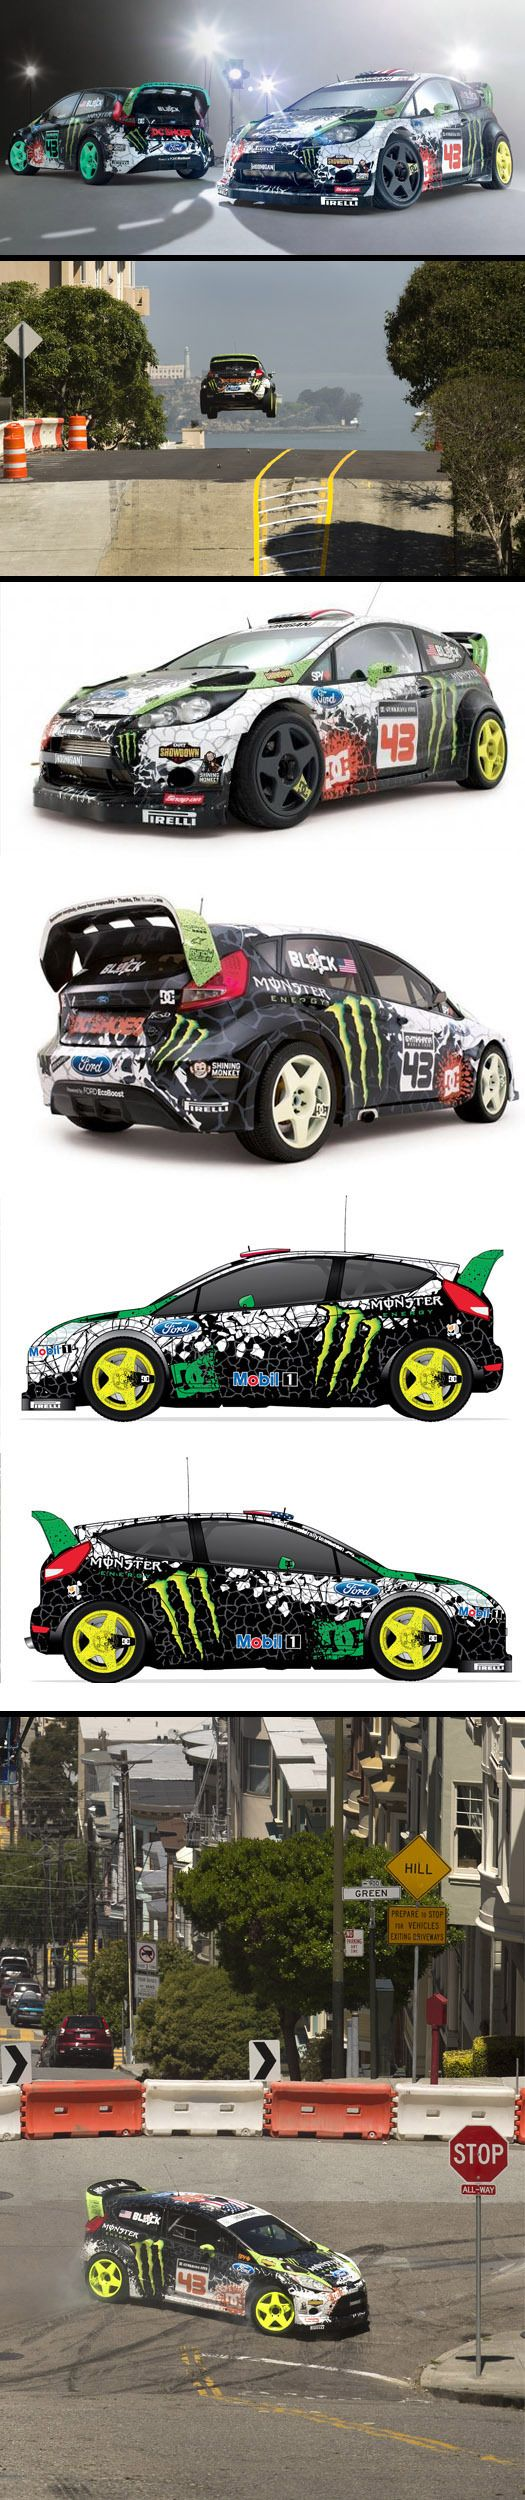 Dc shoes ken block branding vehicle graphics by soupgraphix inc via behance